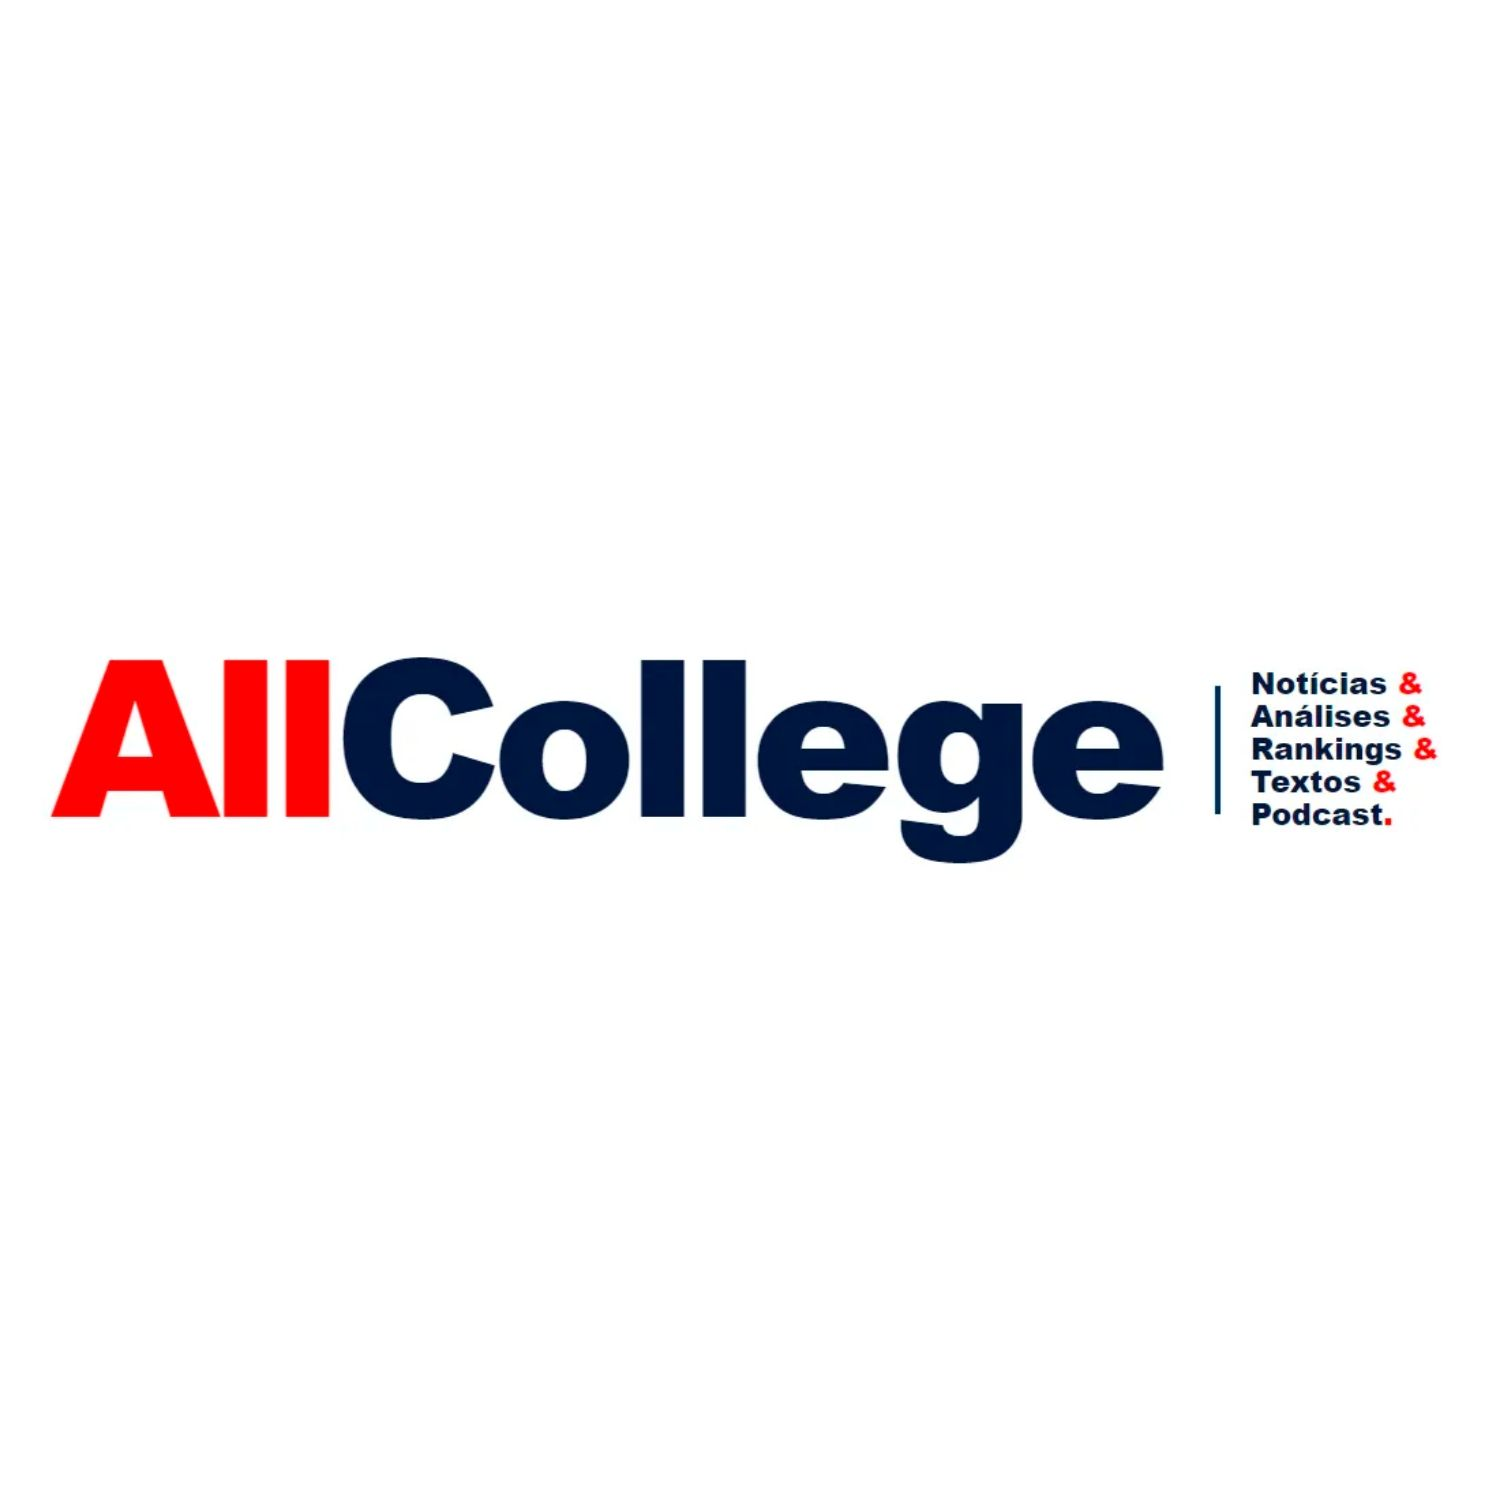 All College Podcast